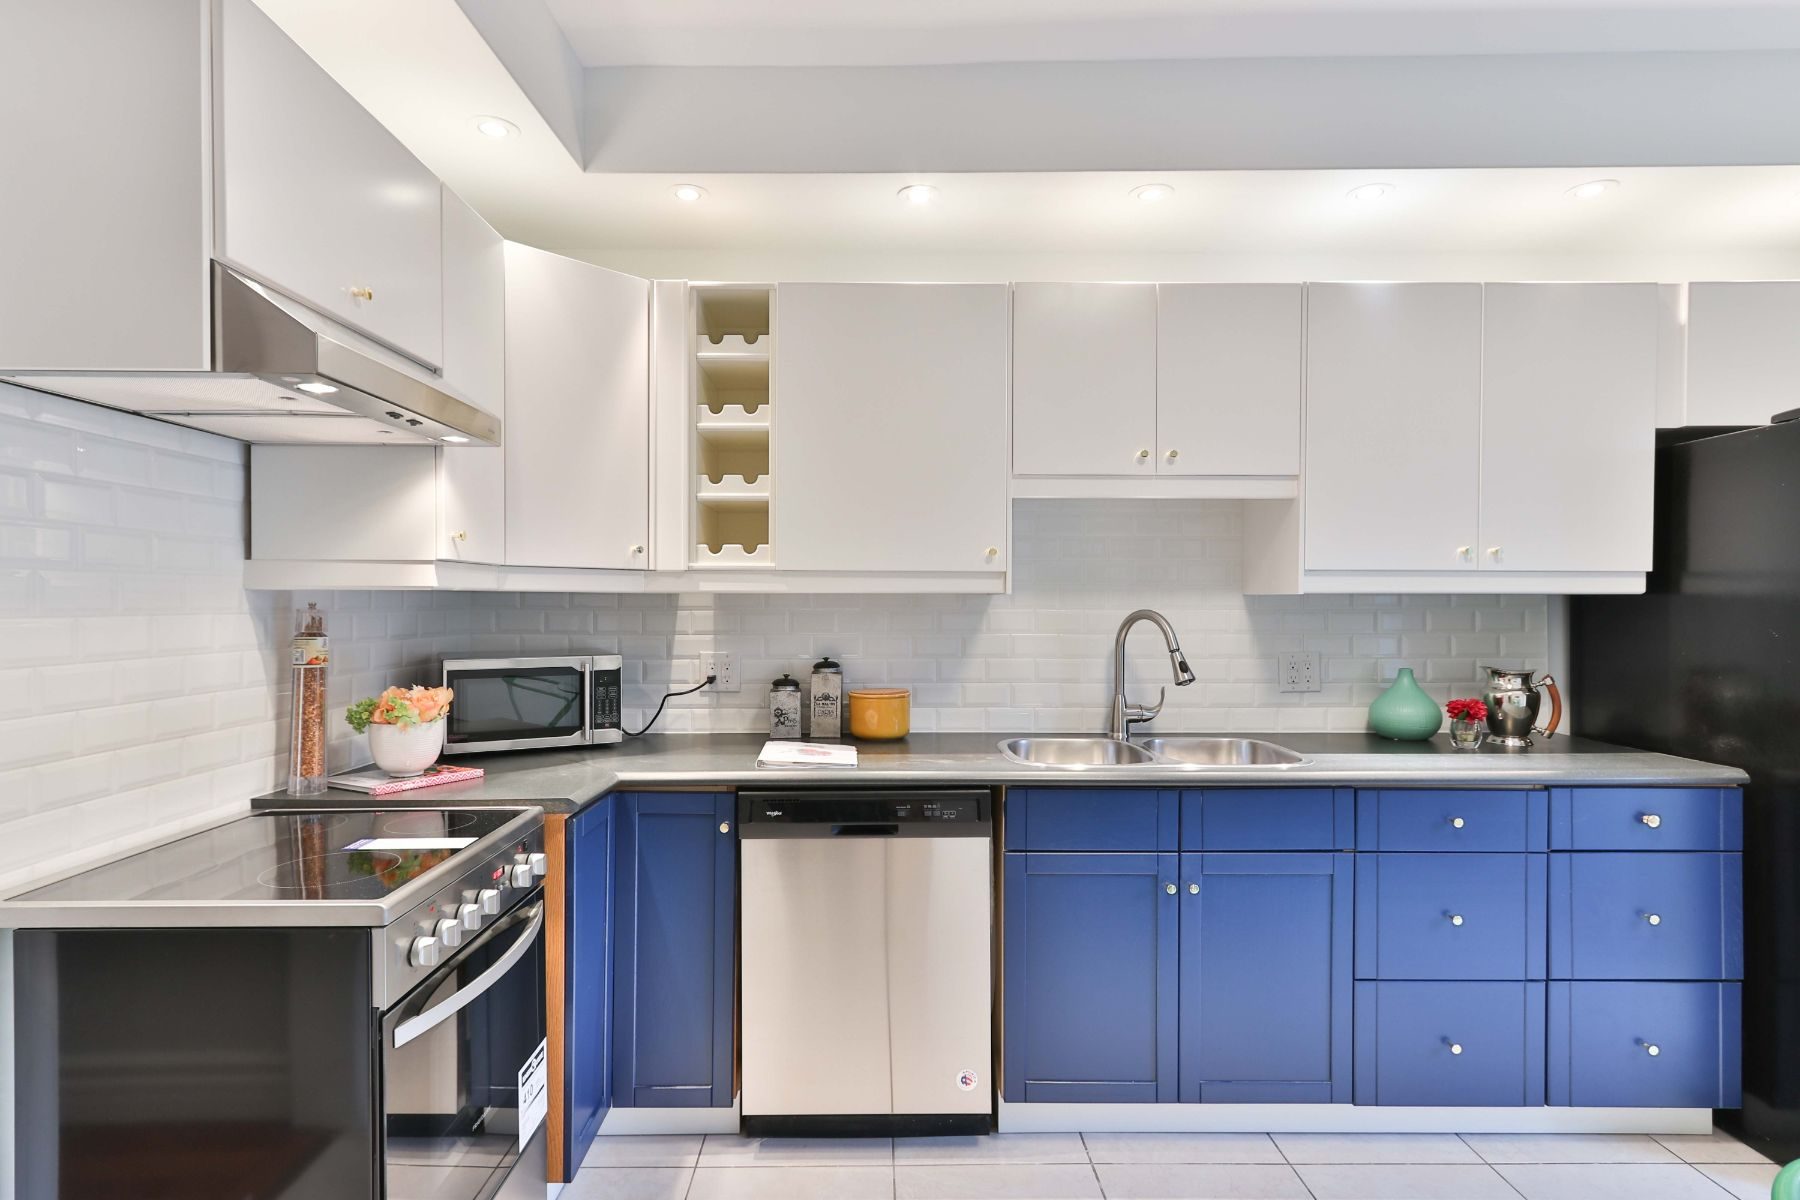 Top 10 Open Kitchen Design Ideas For Small Houses